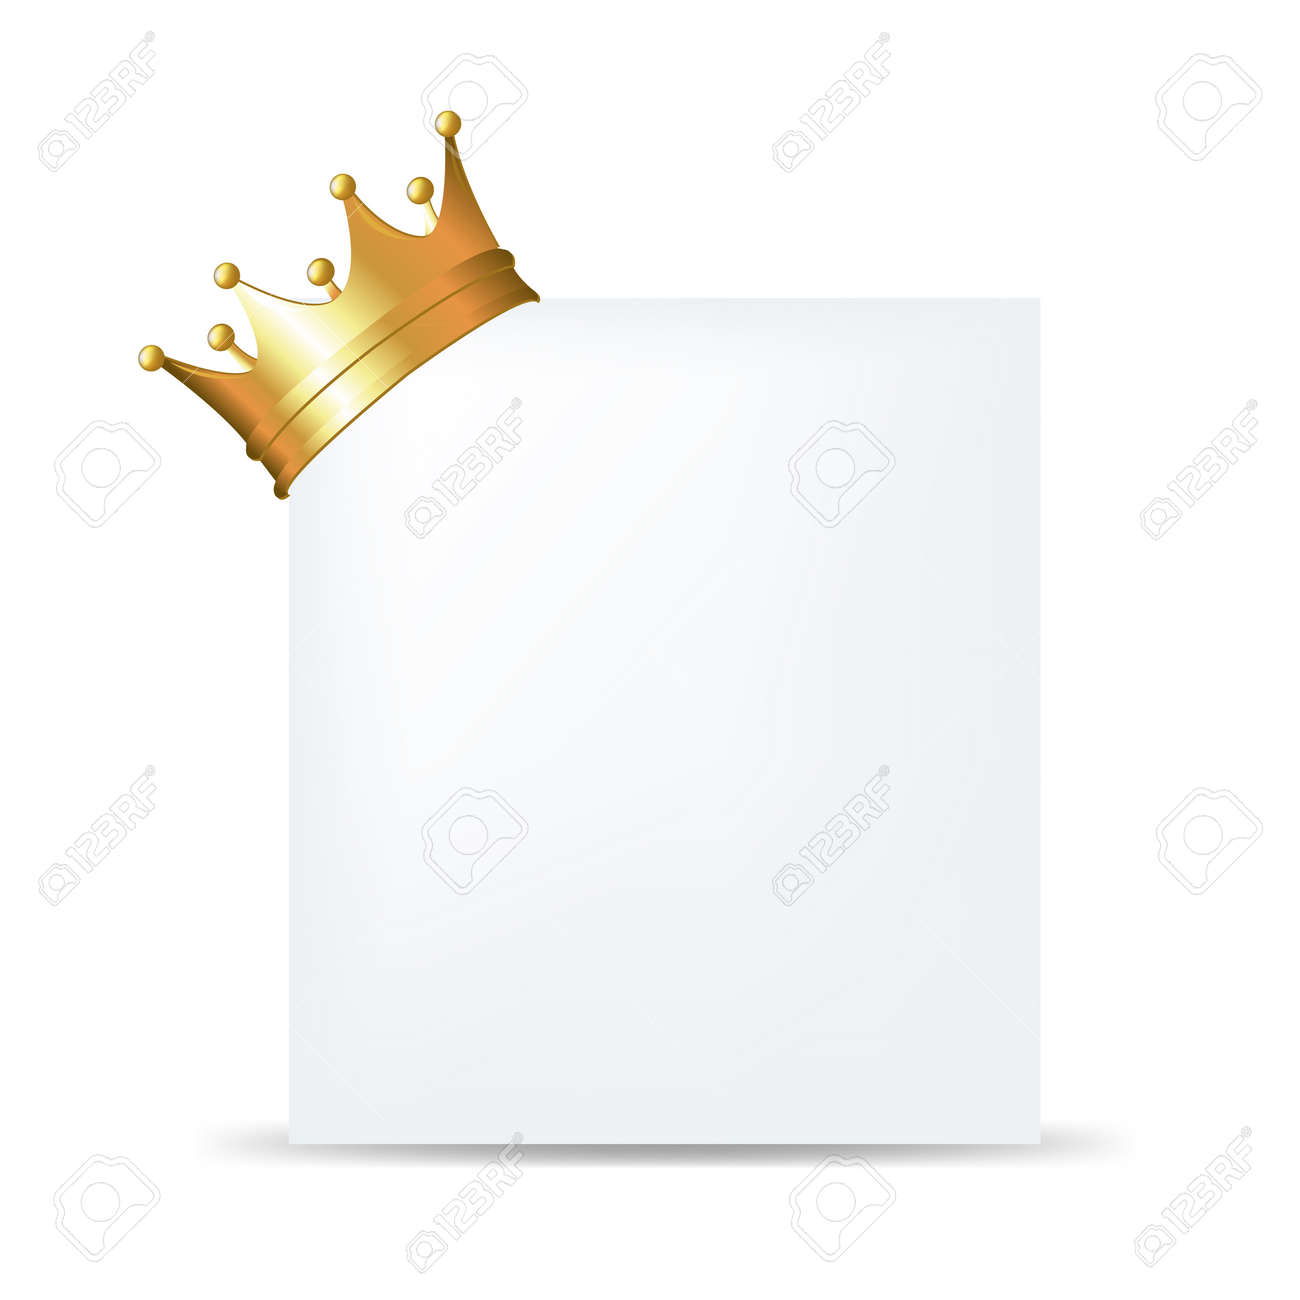 Golden Crown On Blank Card With Gradient Mesh, Isolated On White Background, Vector Illustration - 18019313